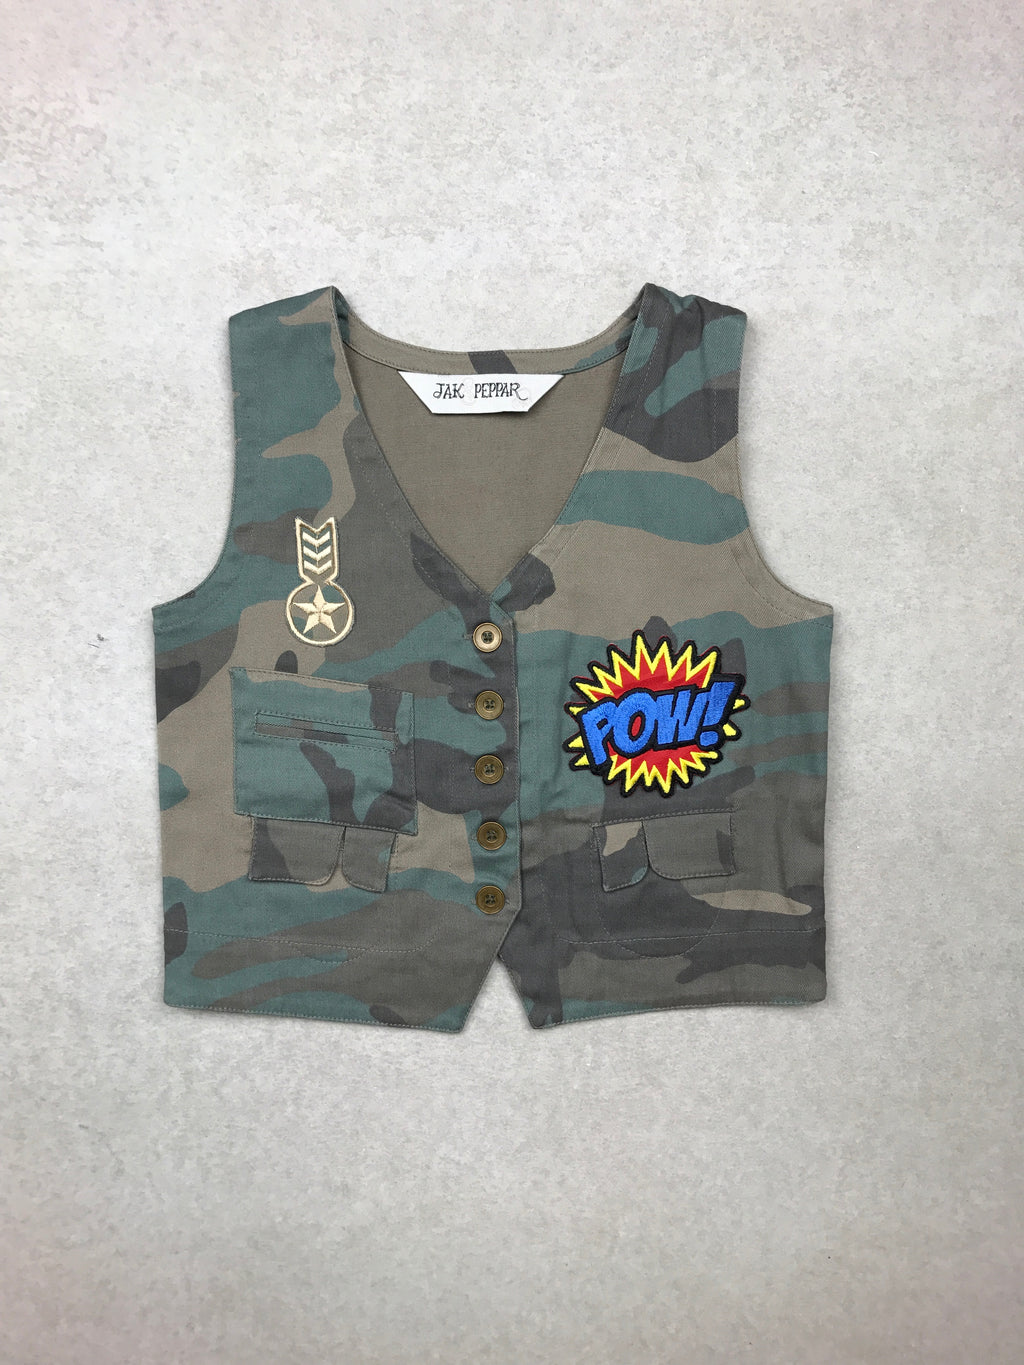 Junk Town Vest in Camouflage